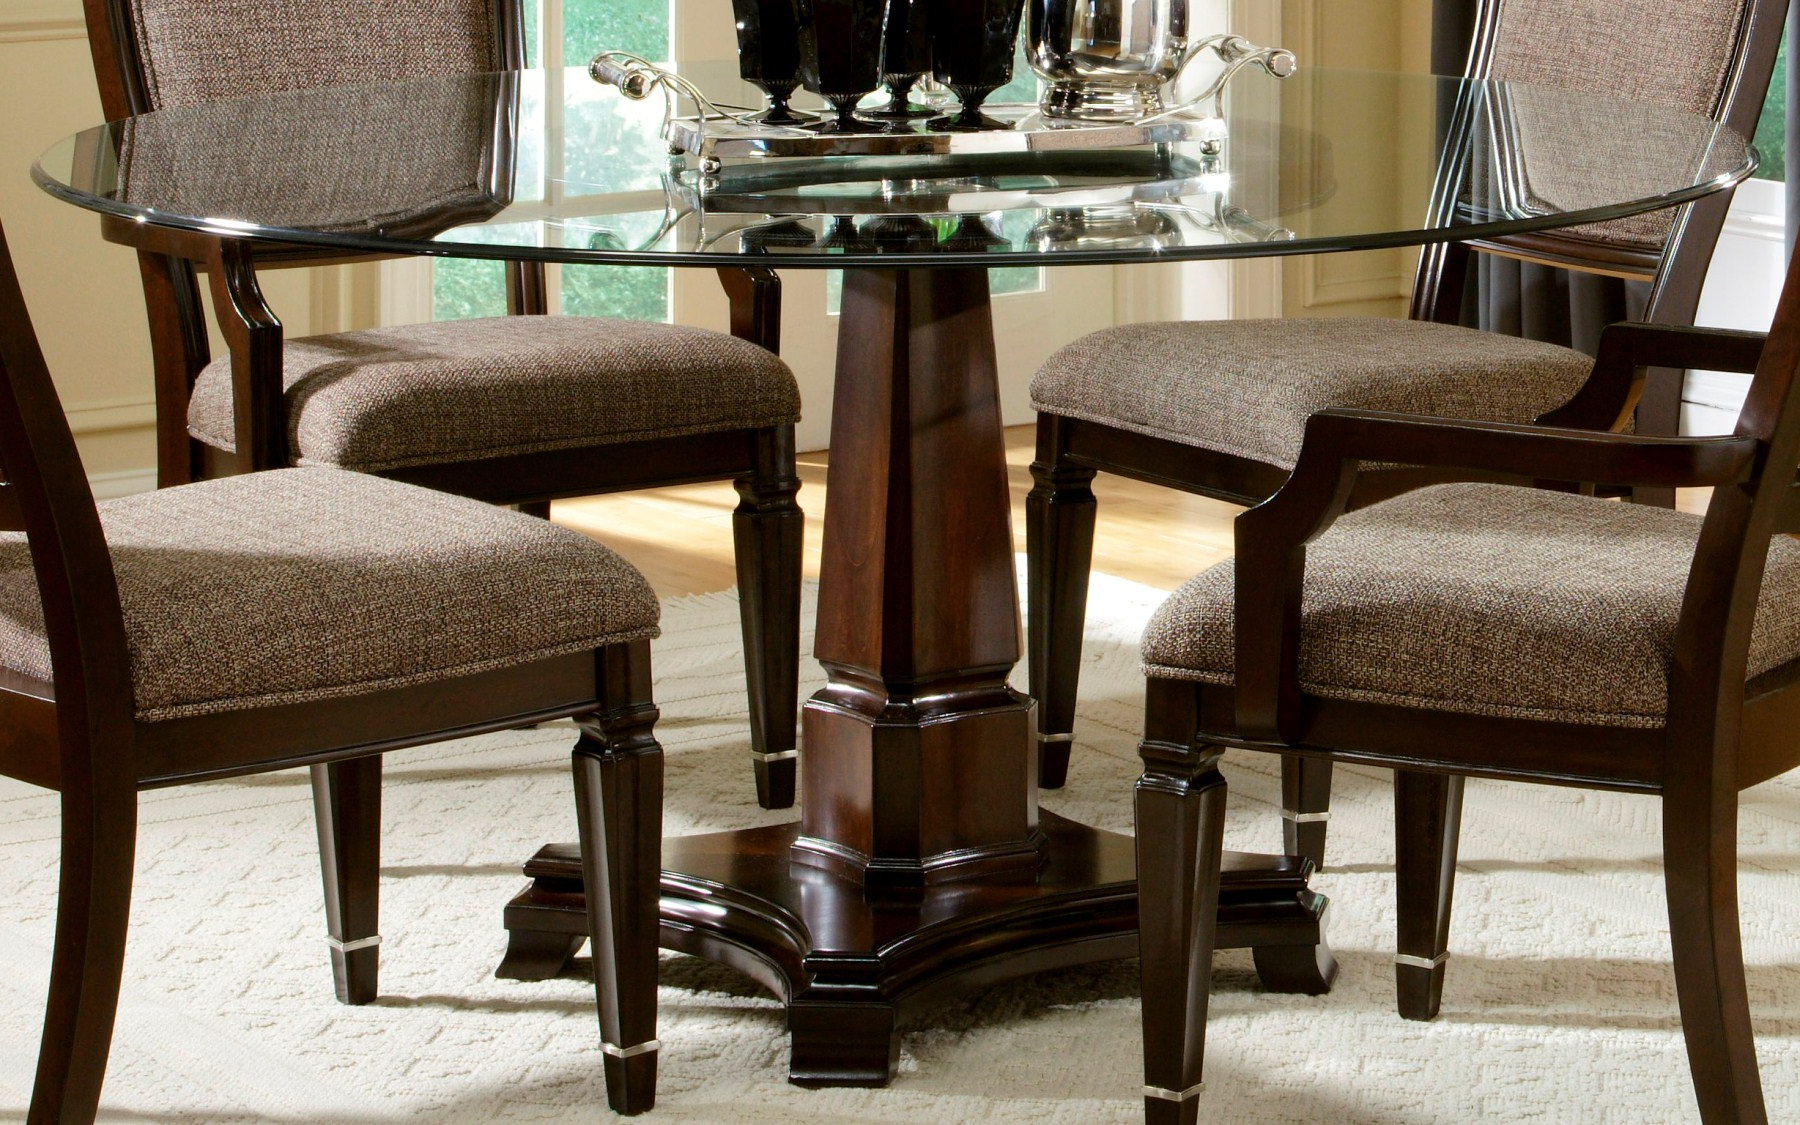 Round Dining Tables With Glass Top For Current Dining Table Bases For Glass Tops (View 19 of 25)